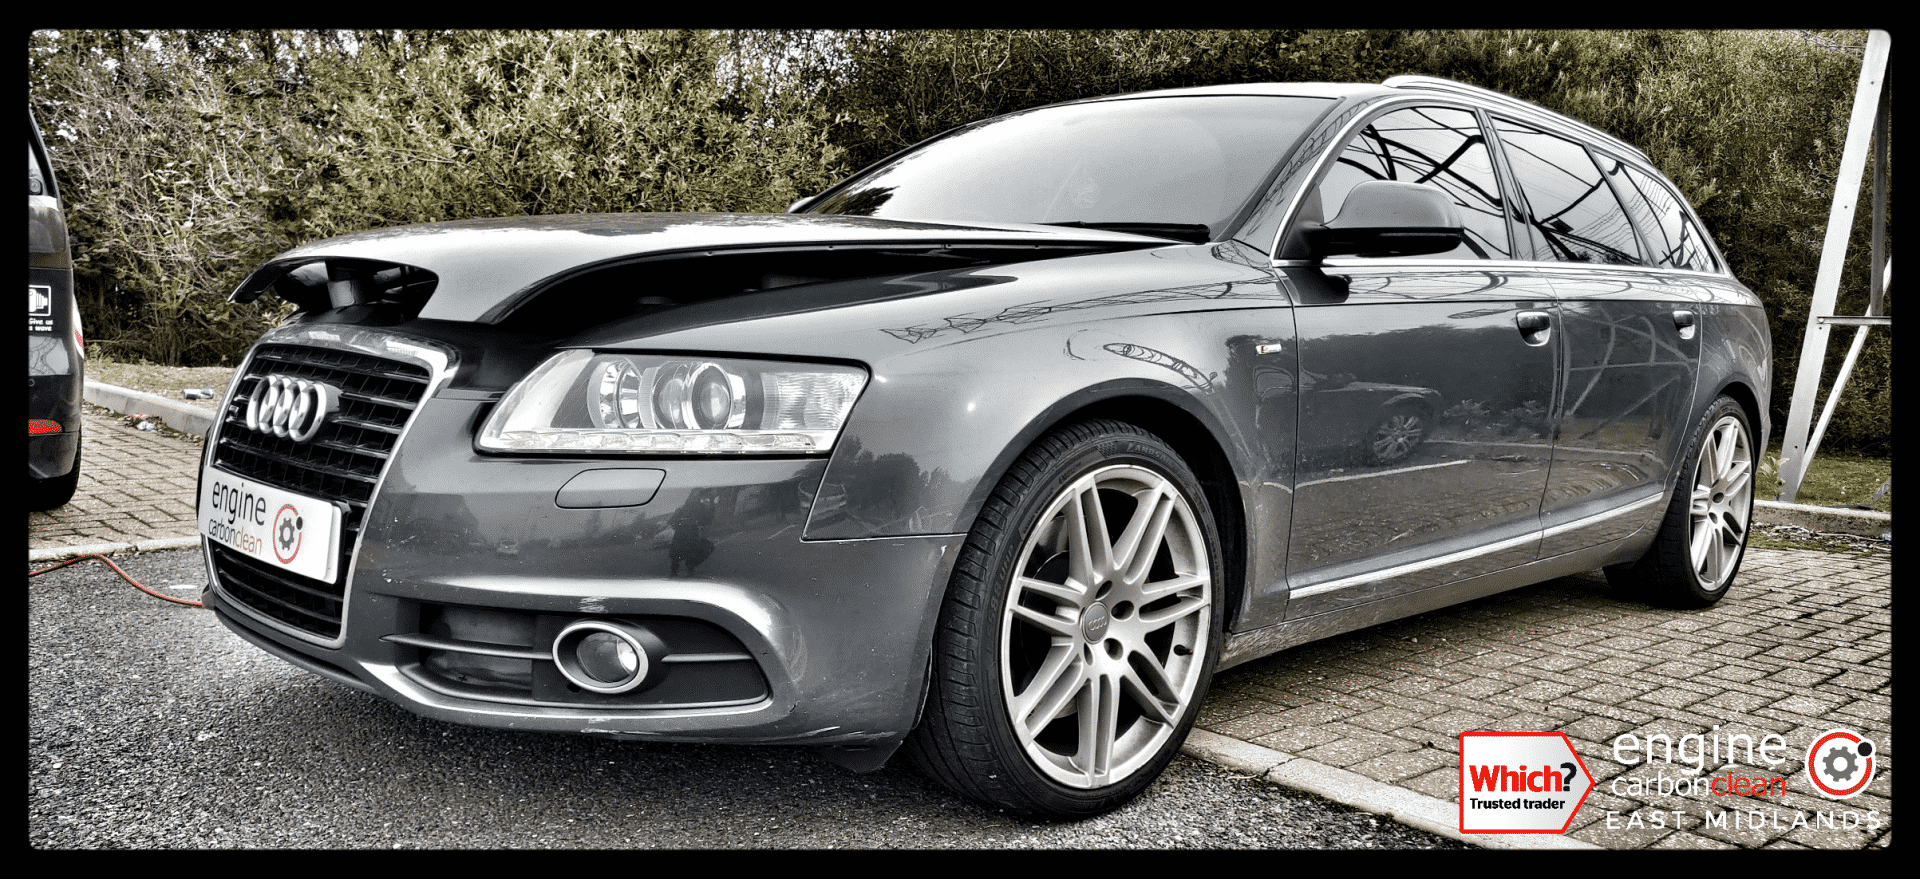 Diagnostic Consultation and Engine Carbon Clean on an Audi A6 3.0 TDI (2010 - 125,915 miles)